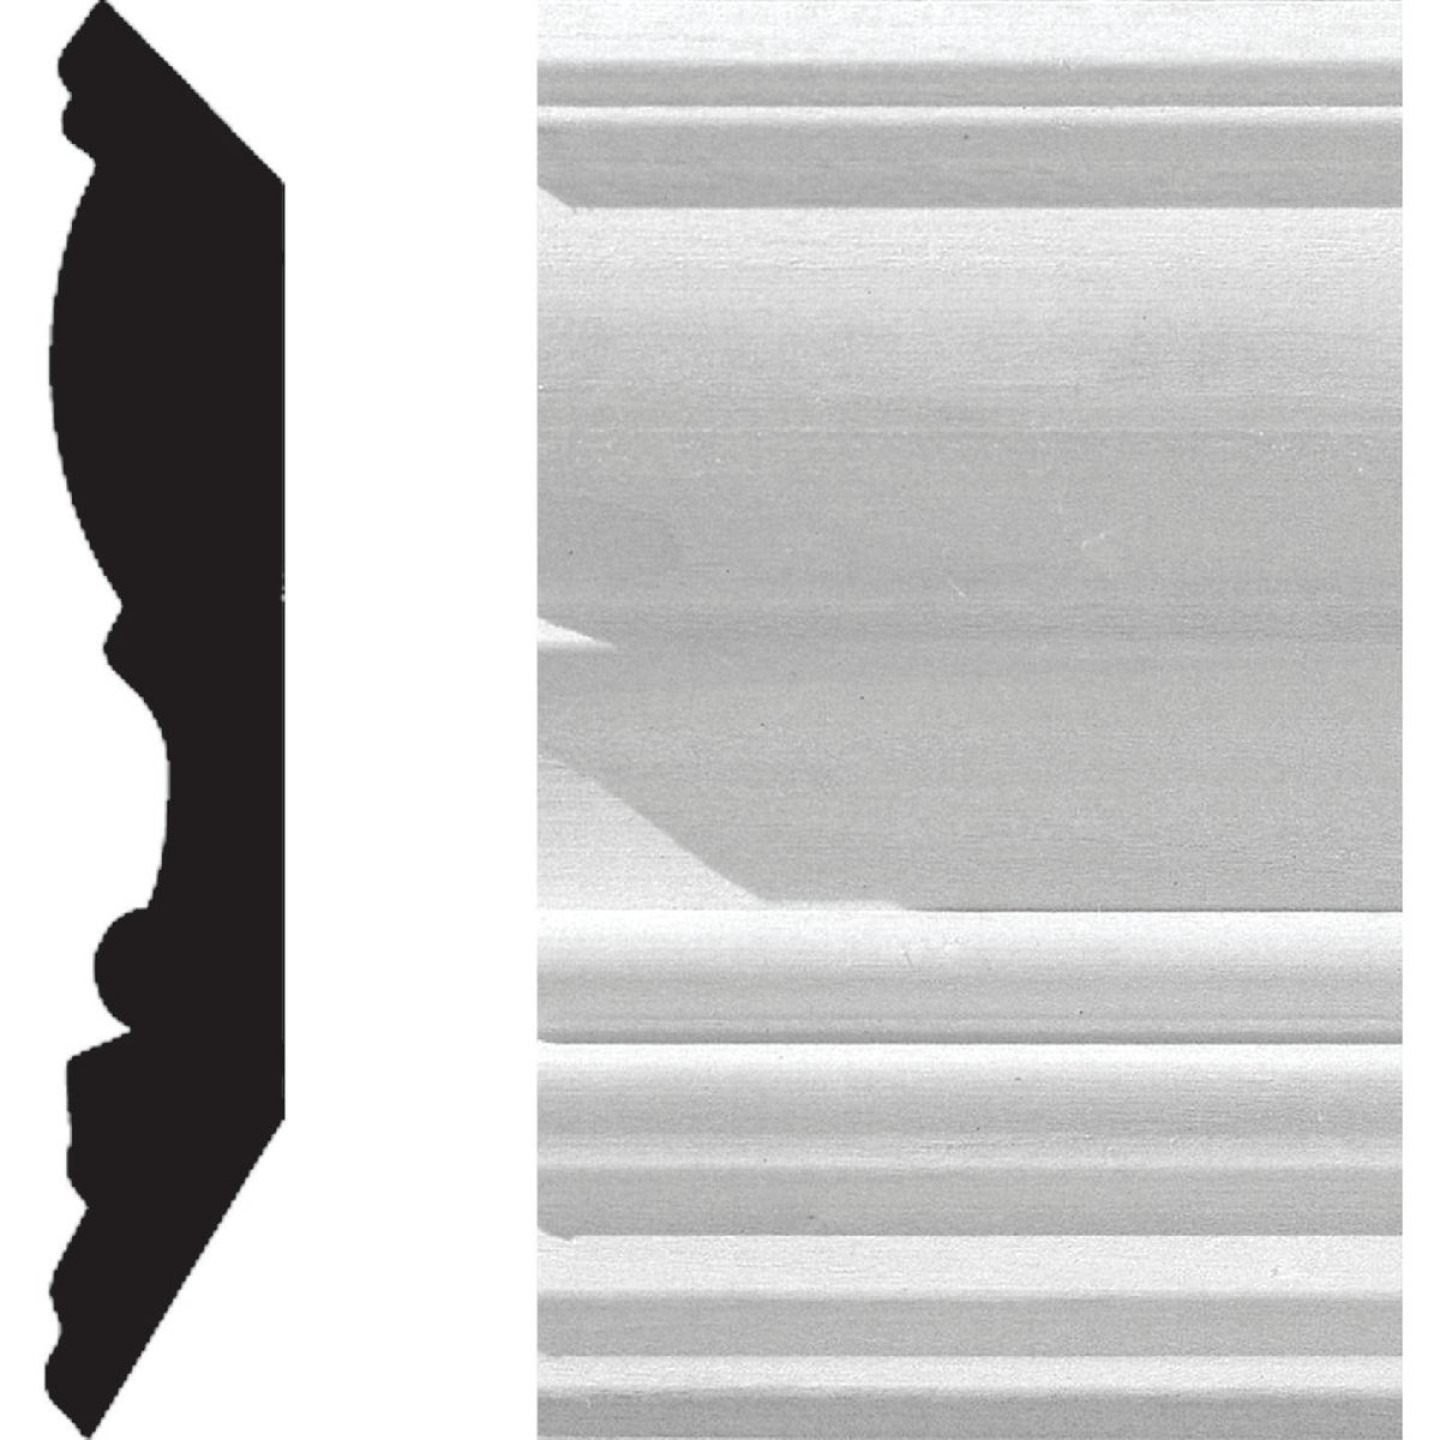 House of Fara 3/4 In. W. x 4-1/2 In. H. x 8 Ft. L. White Primed MDF Detail Crown Molding Image 1